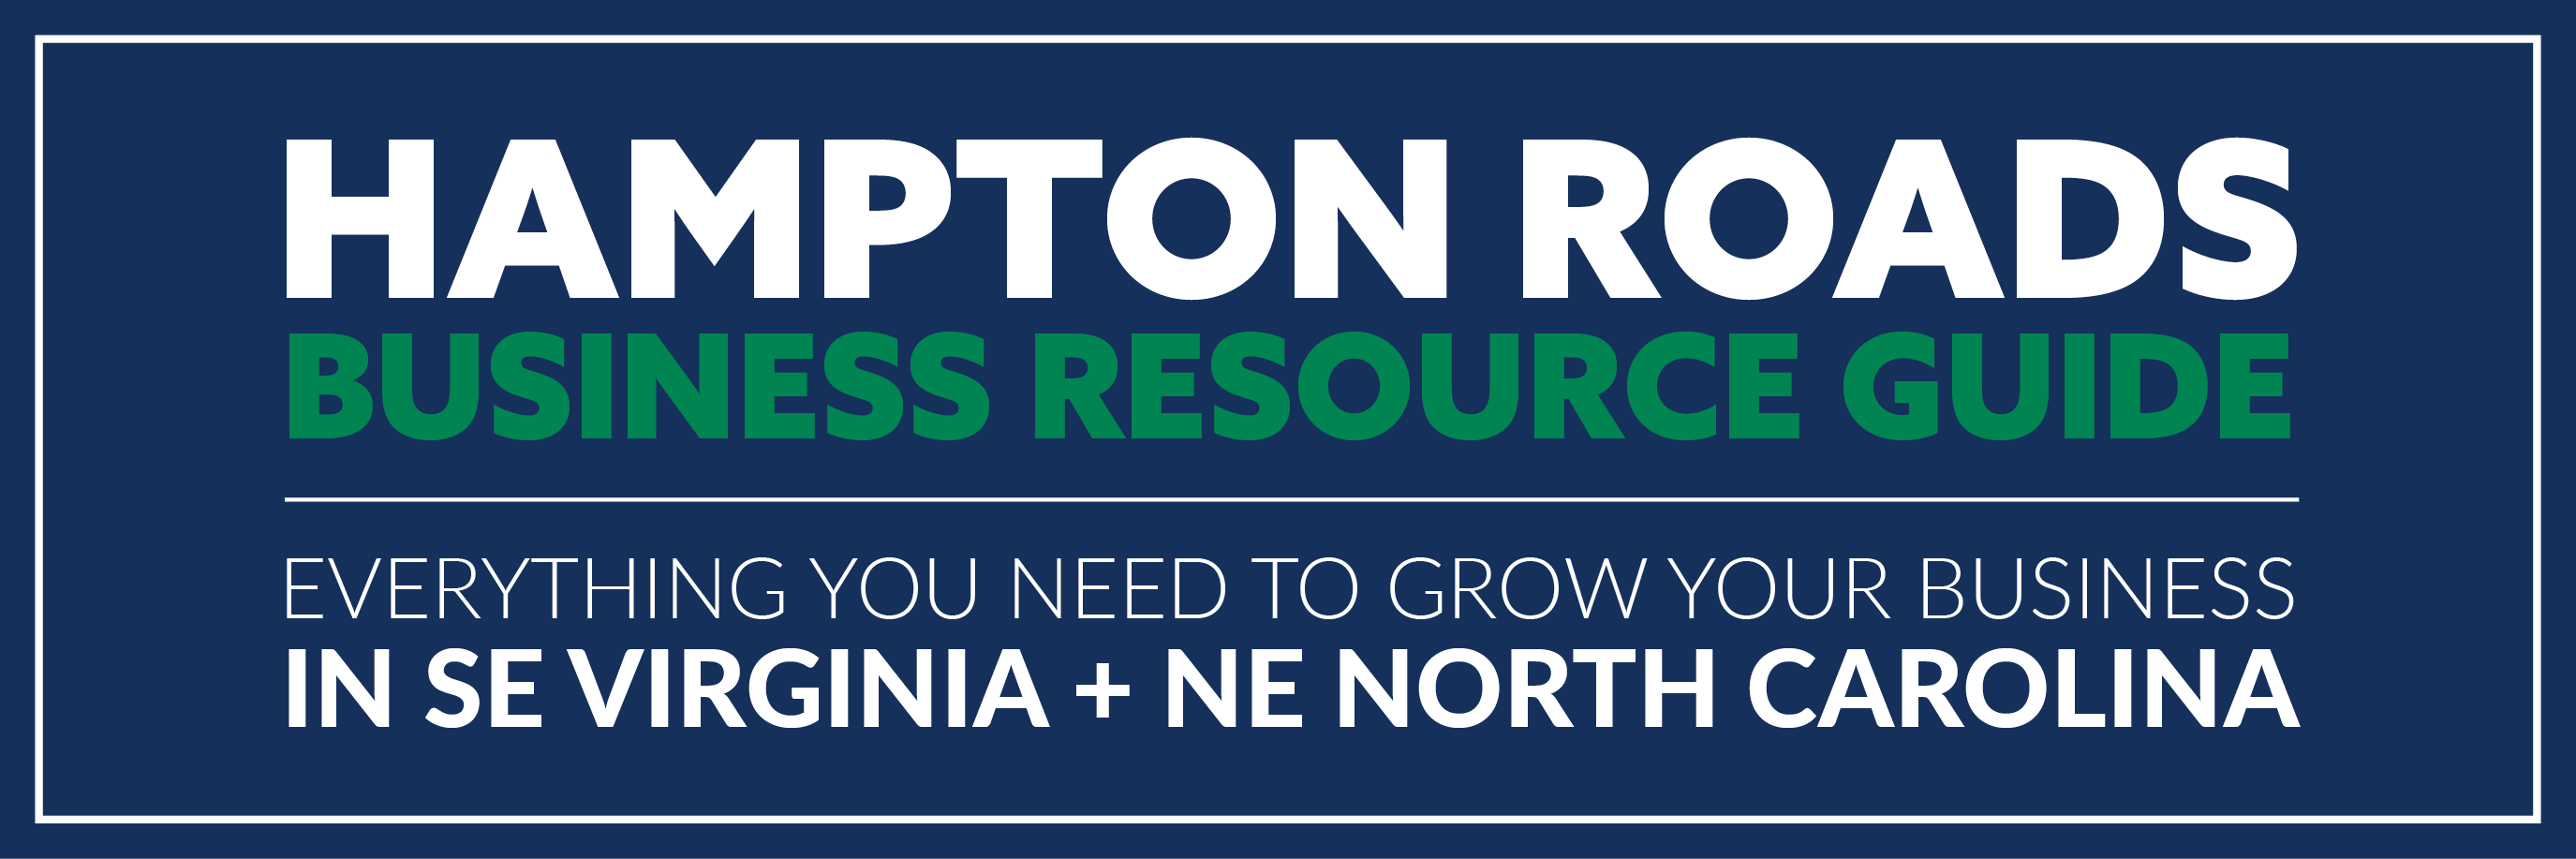 2020 Hampton Roads Business Resource Guide 003